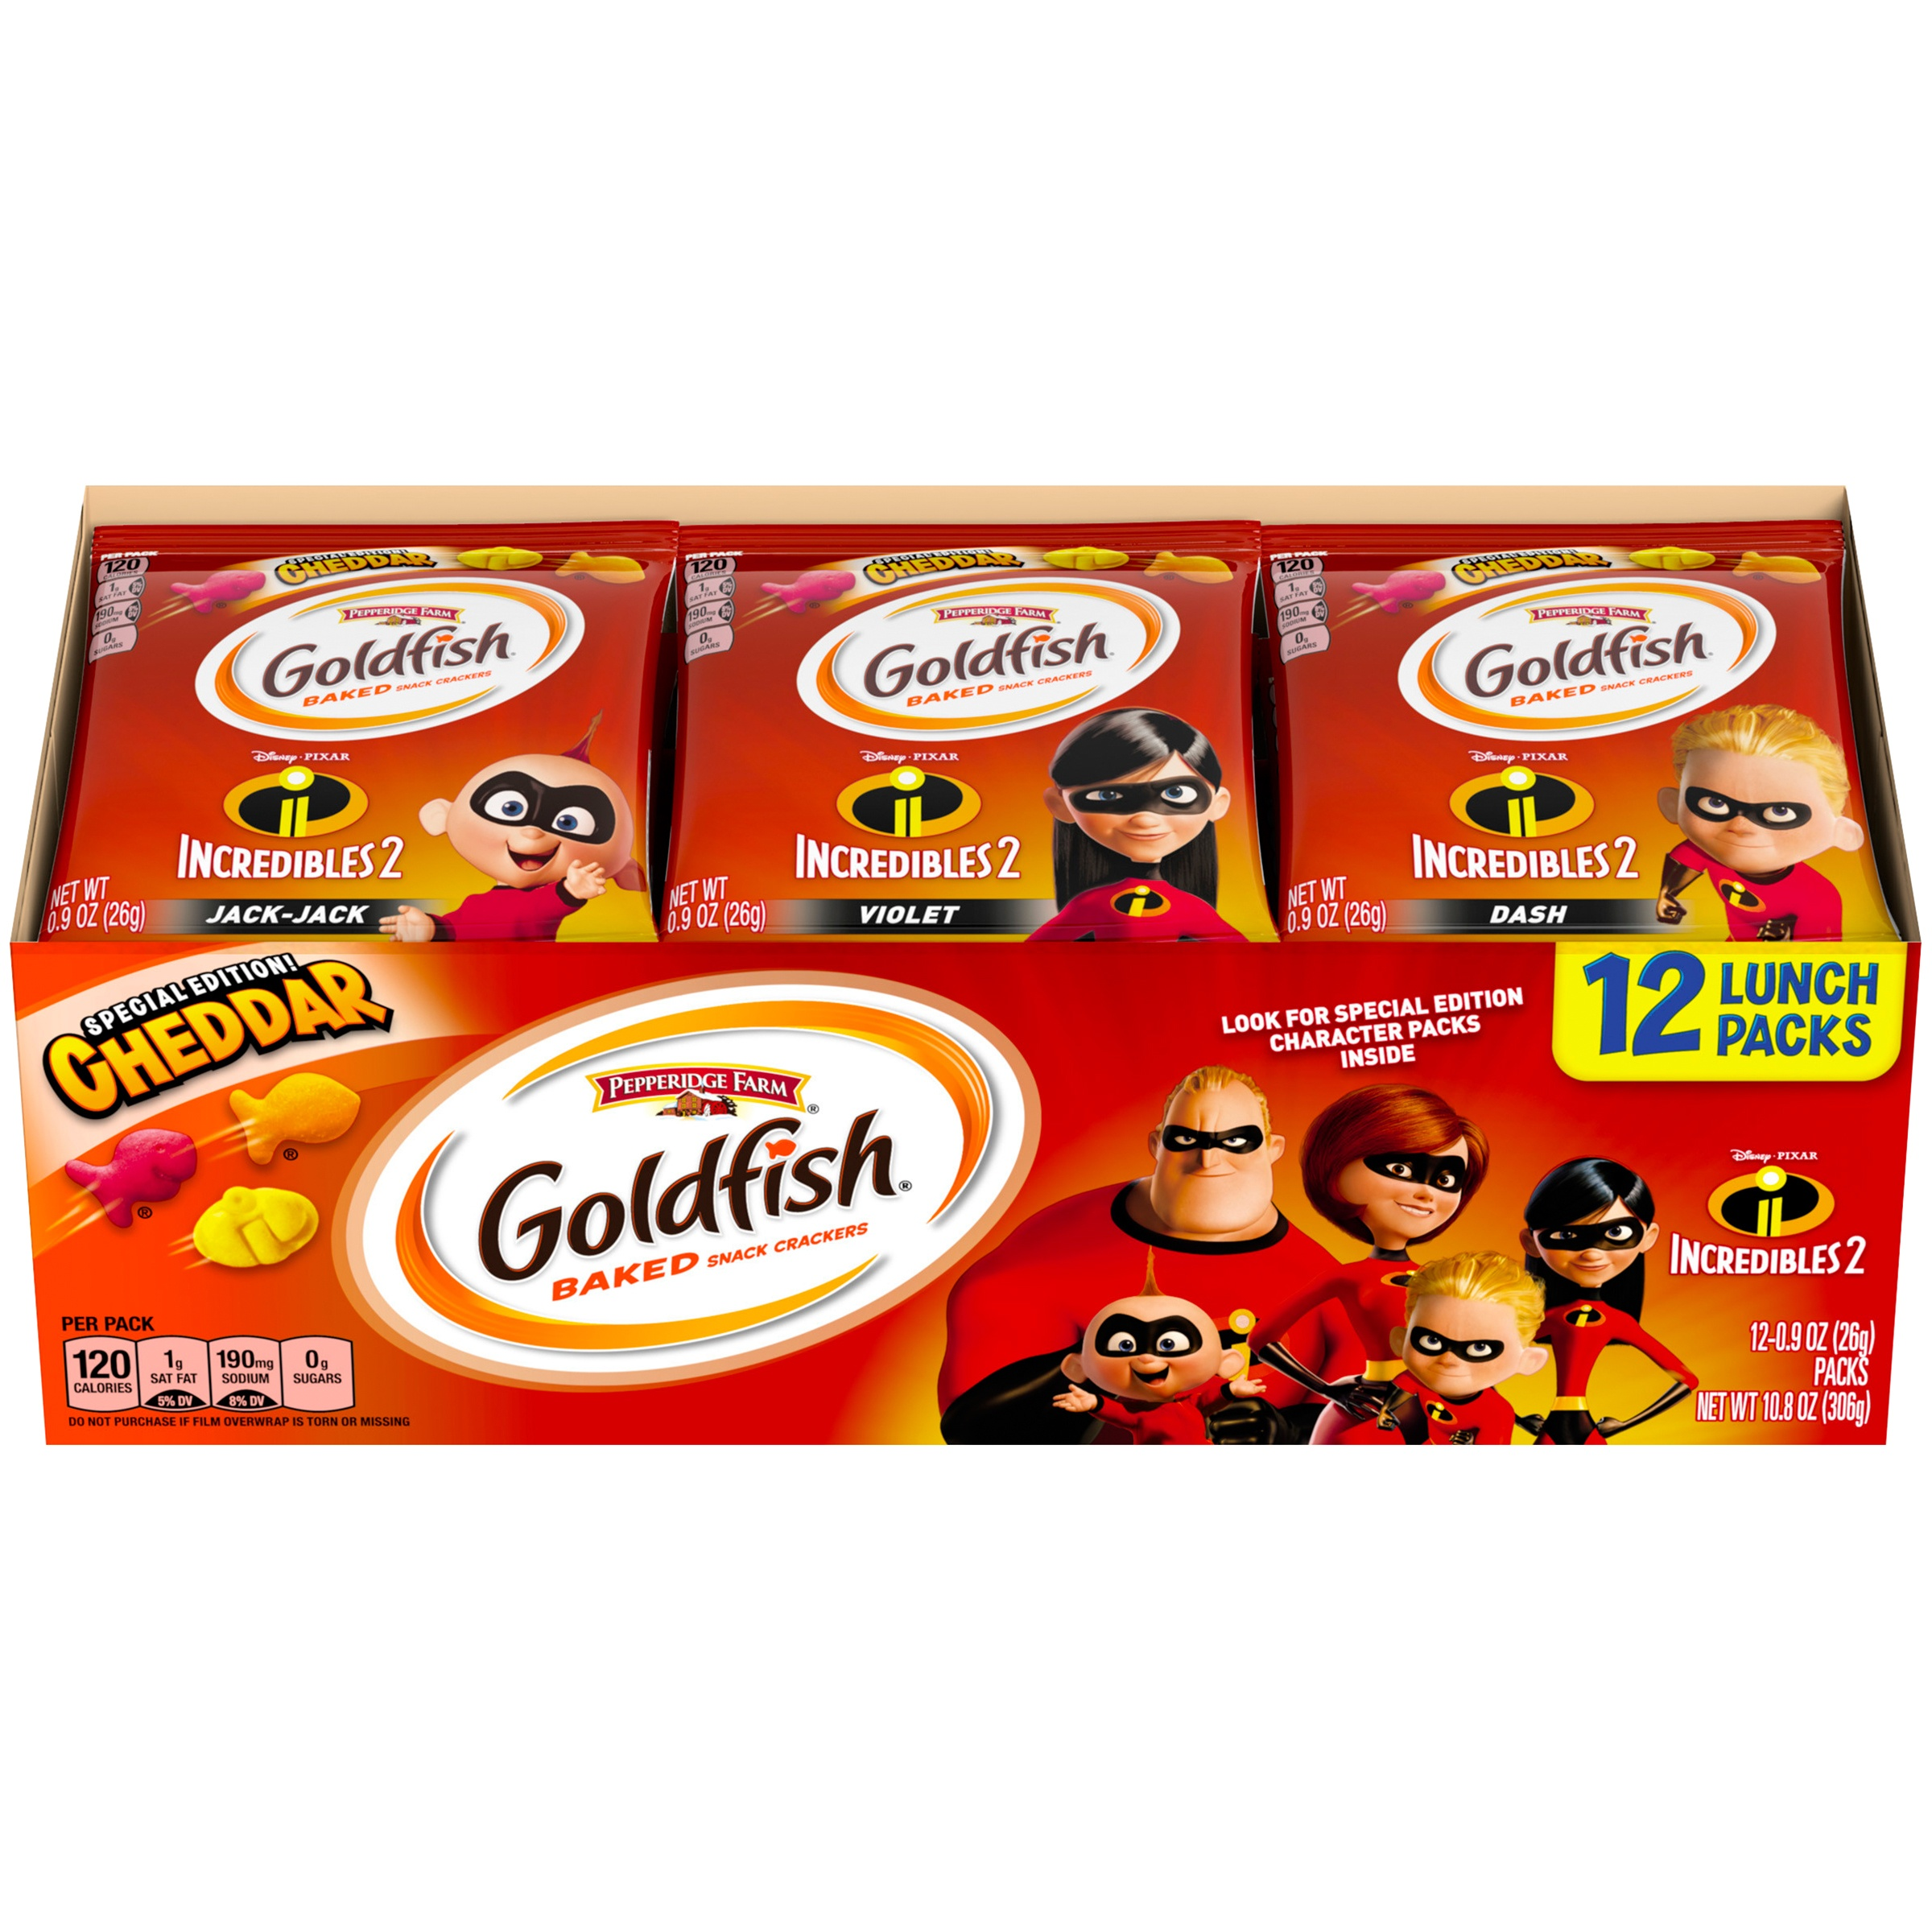 Pepperidge Farm Goldfish Incredibles 2 Baked Cheddar Snack Crackers Special Edition!, 0.9 Oz., 12 Count